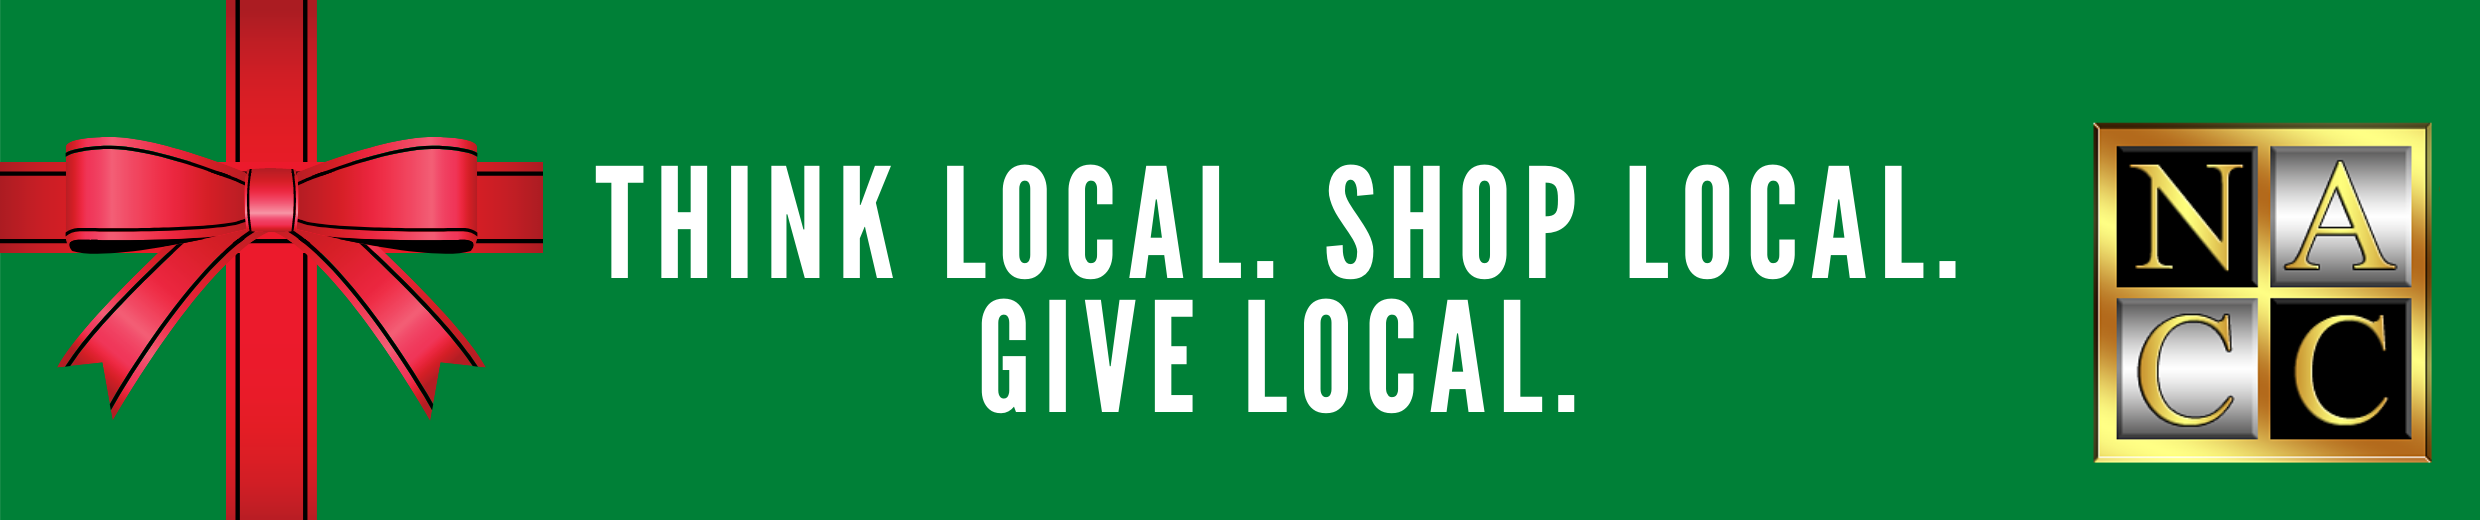 think-loca.-shop-local.-give-local.png